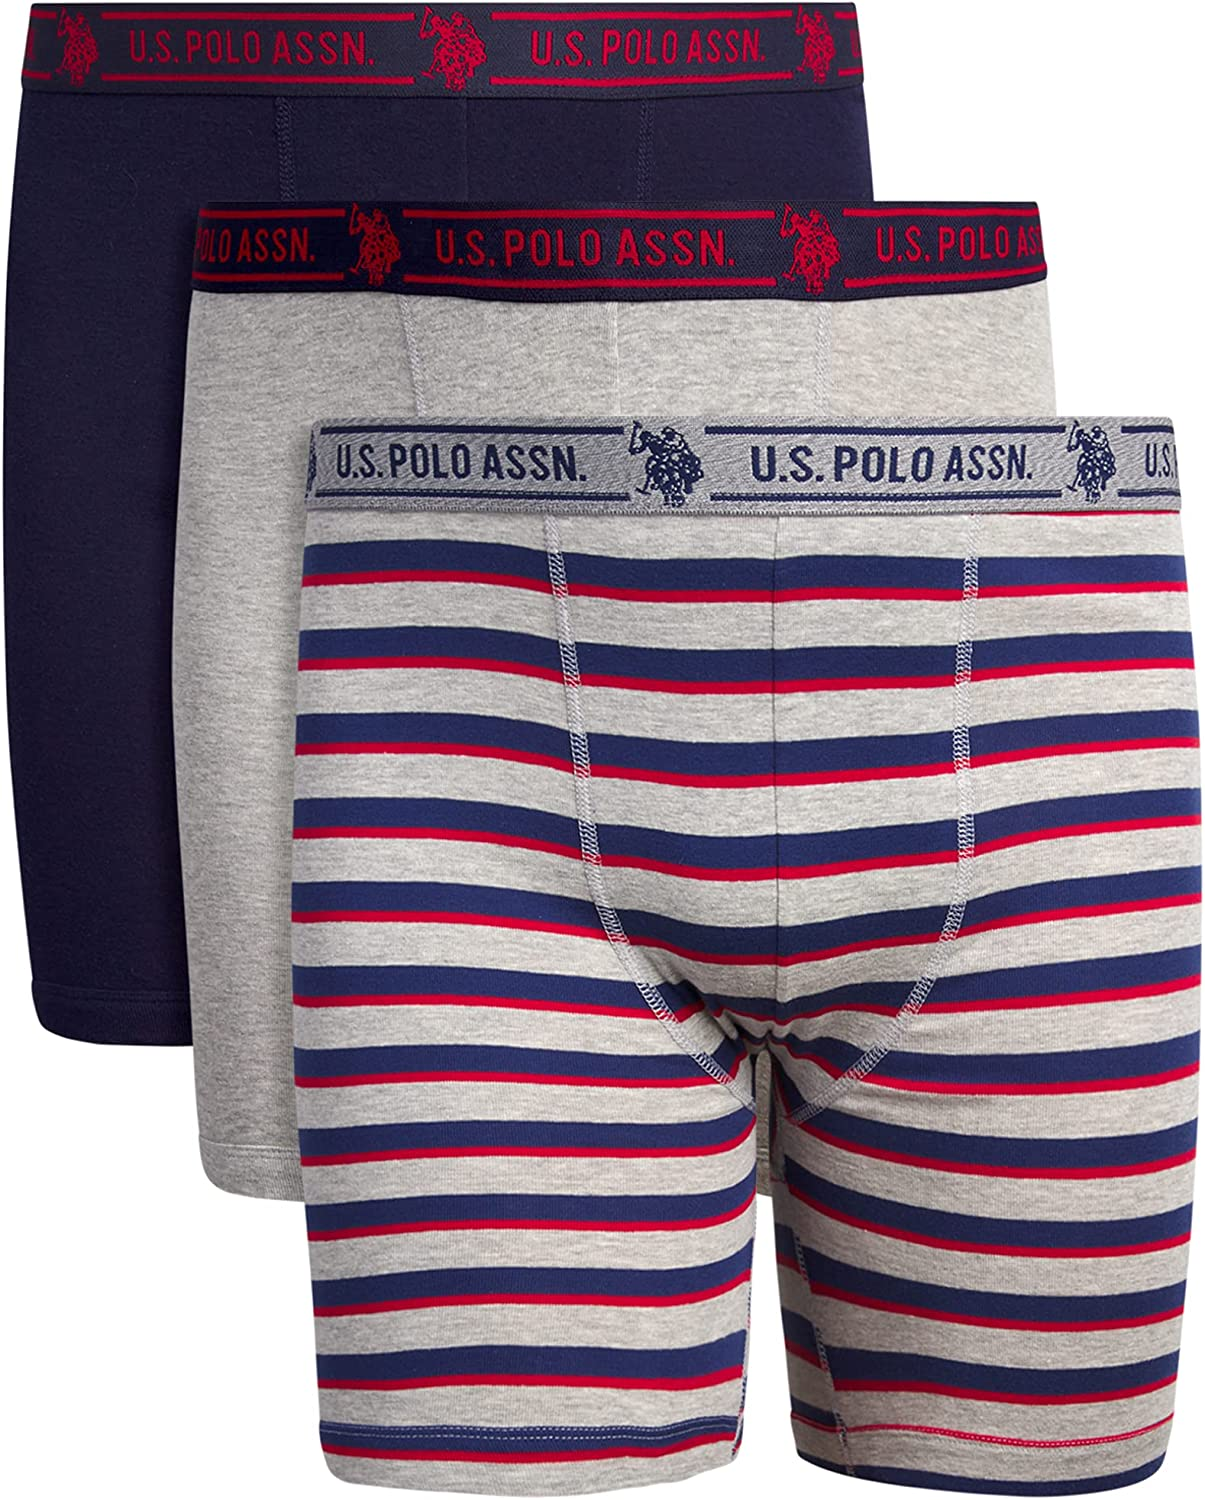 U.S. Polo Assn. Men's Big and Tall Cotton Boxer Brief Underwear (3 Pack)